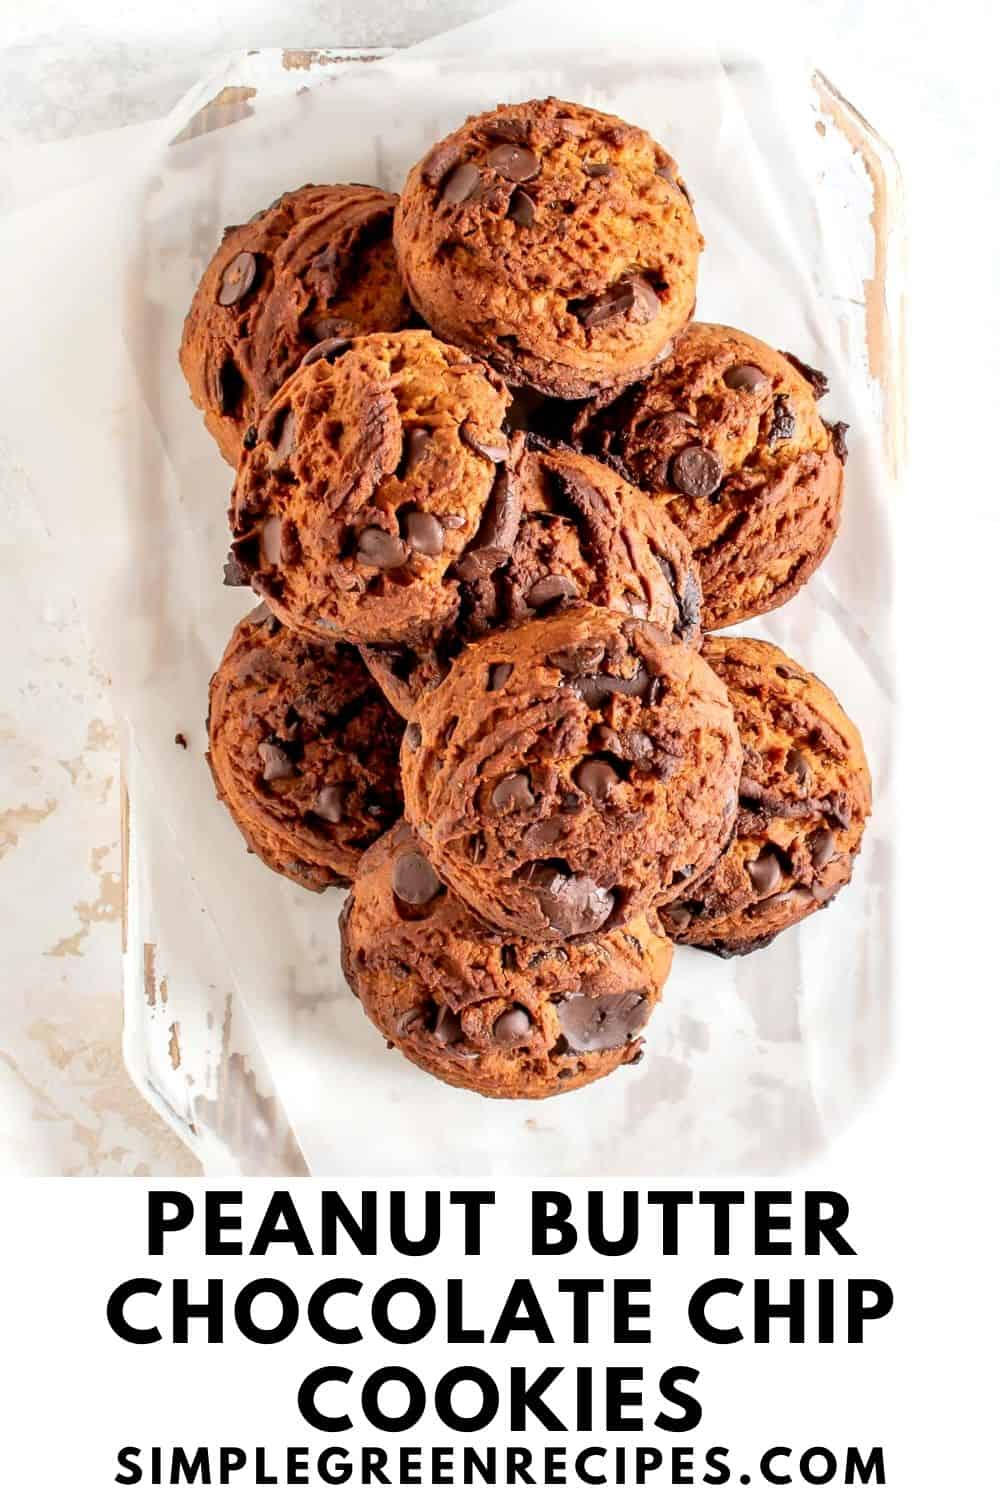 pile of peanut butter cookies with chocolate chips, on a white wooden cutting board